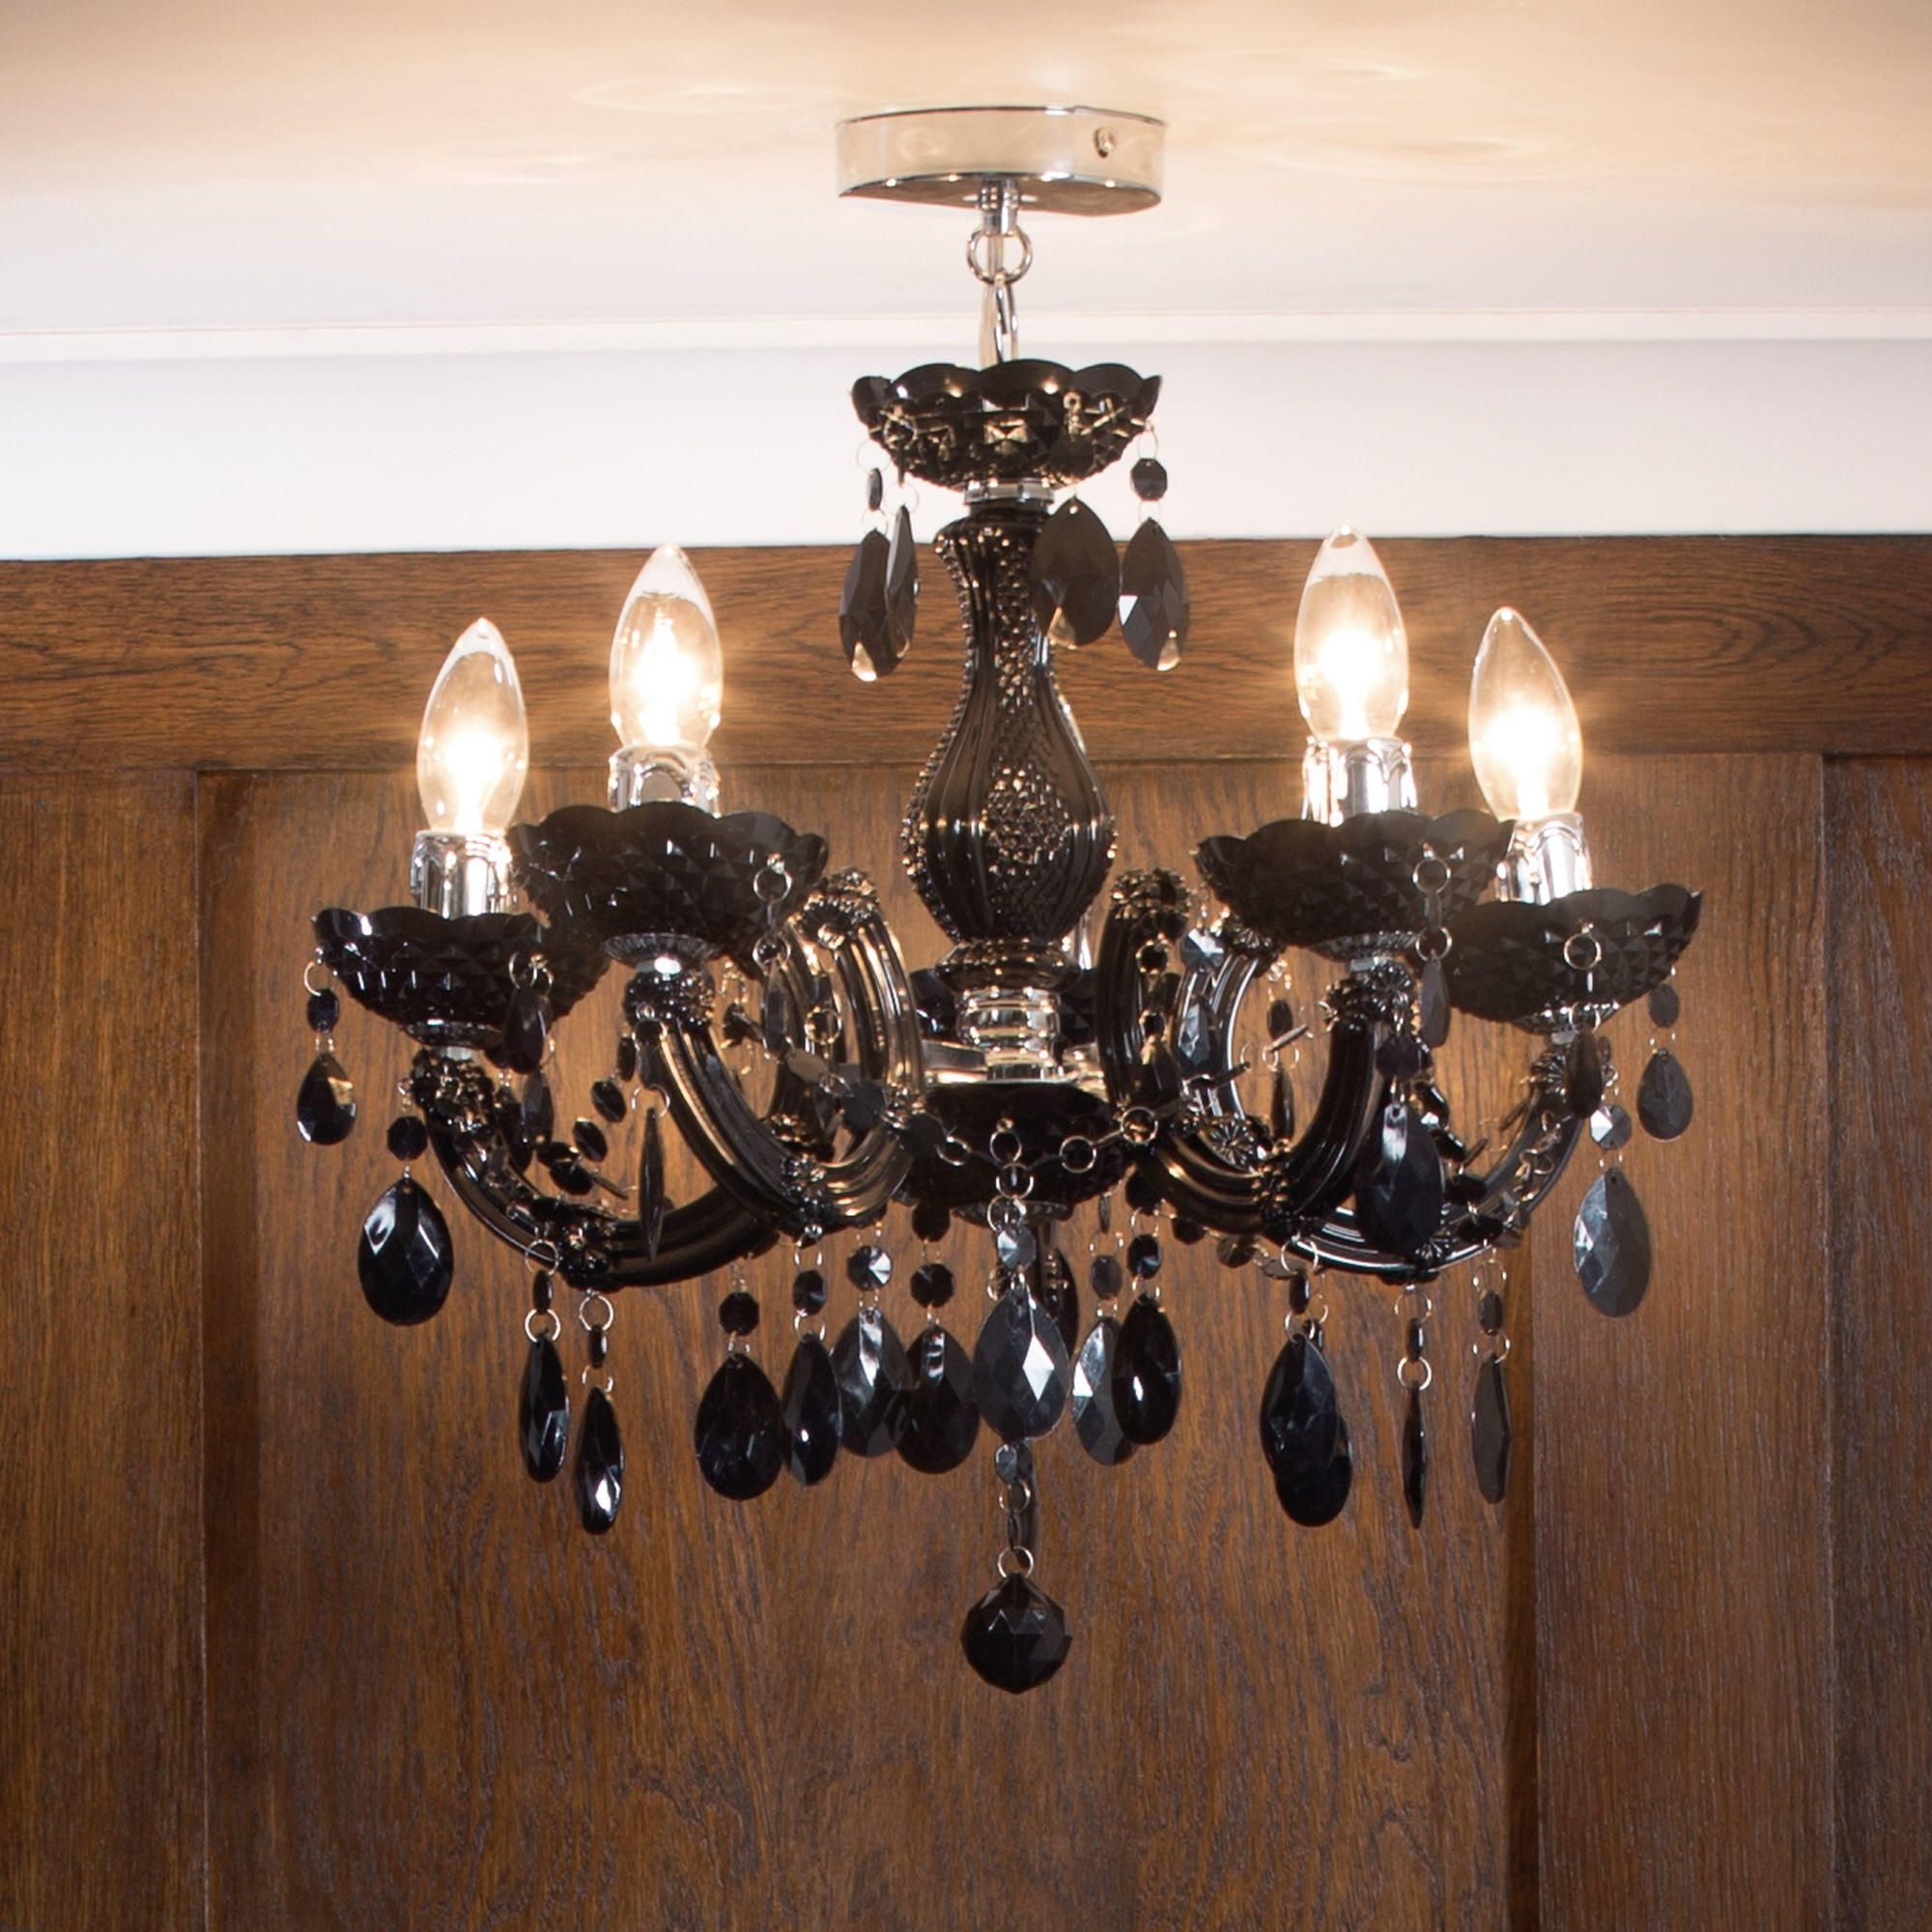 Current Low Ceiling Chandeliers With Regard To Capricious Chandelier For Low Ceiling Best 25 Lighting Ideas On (View 2 of 15)